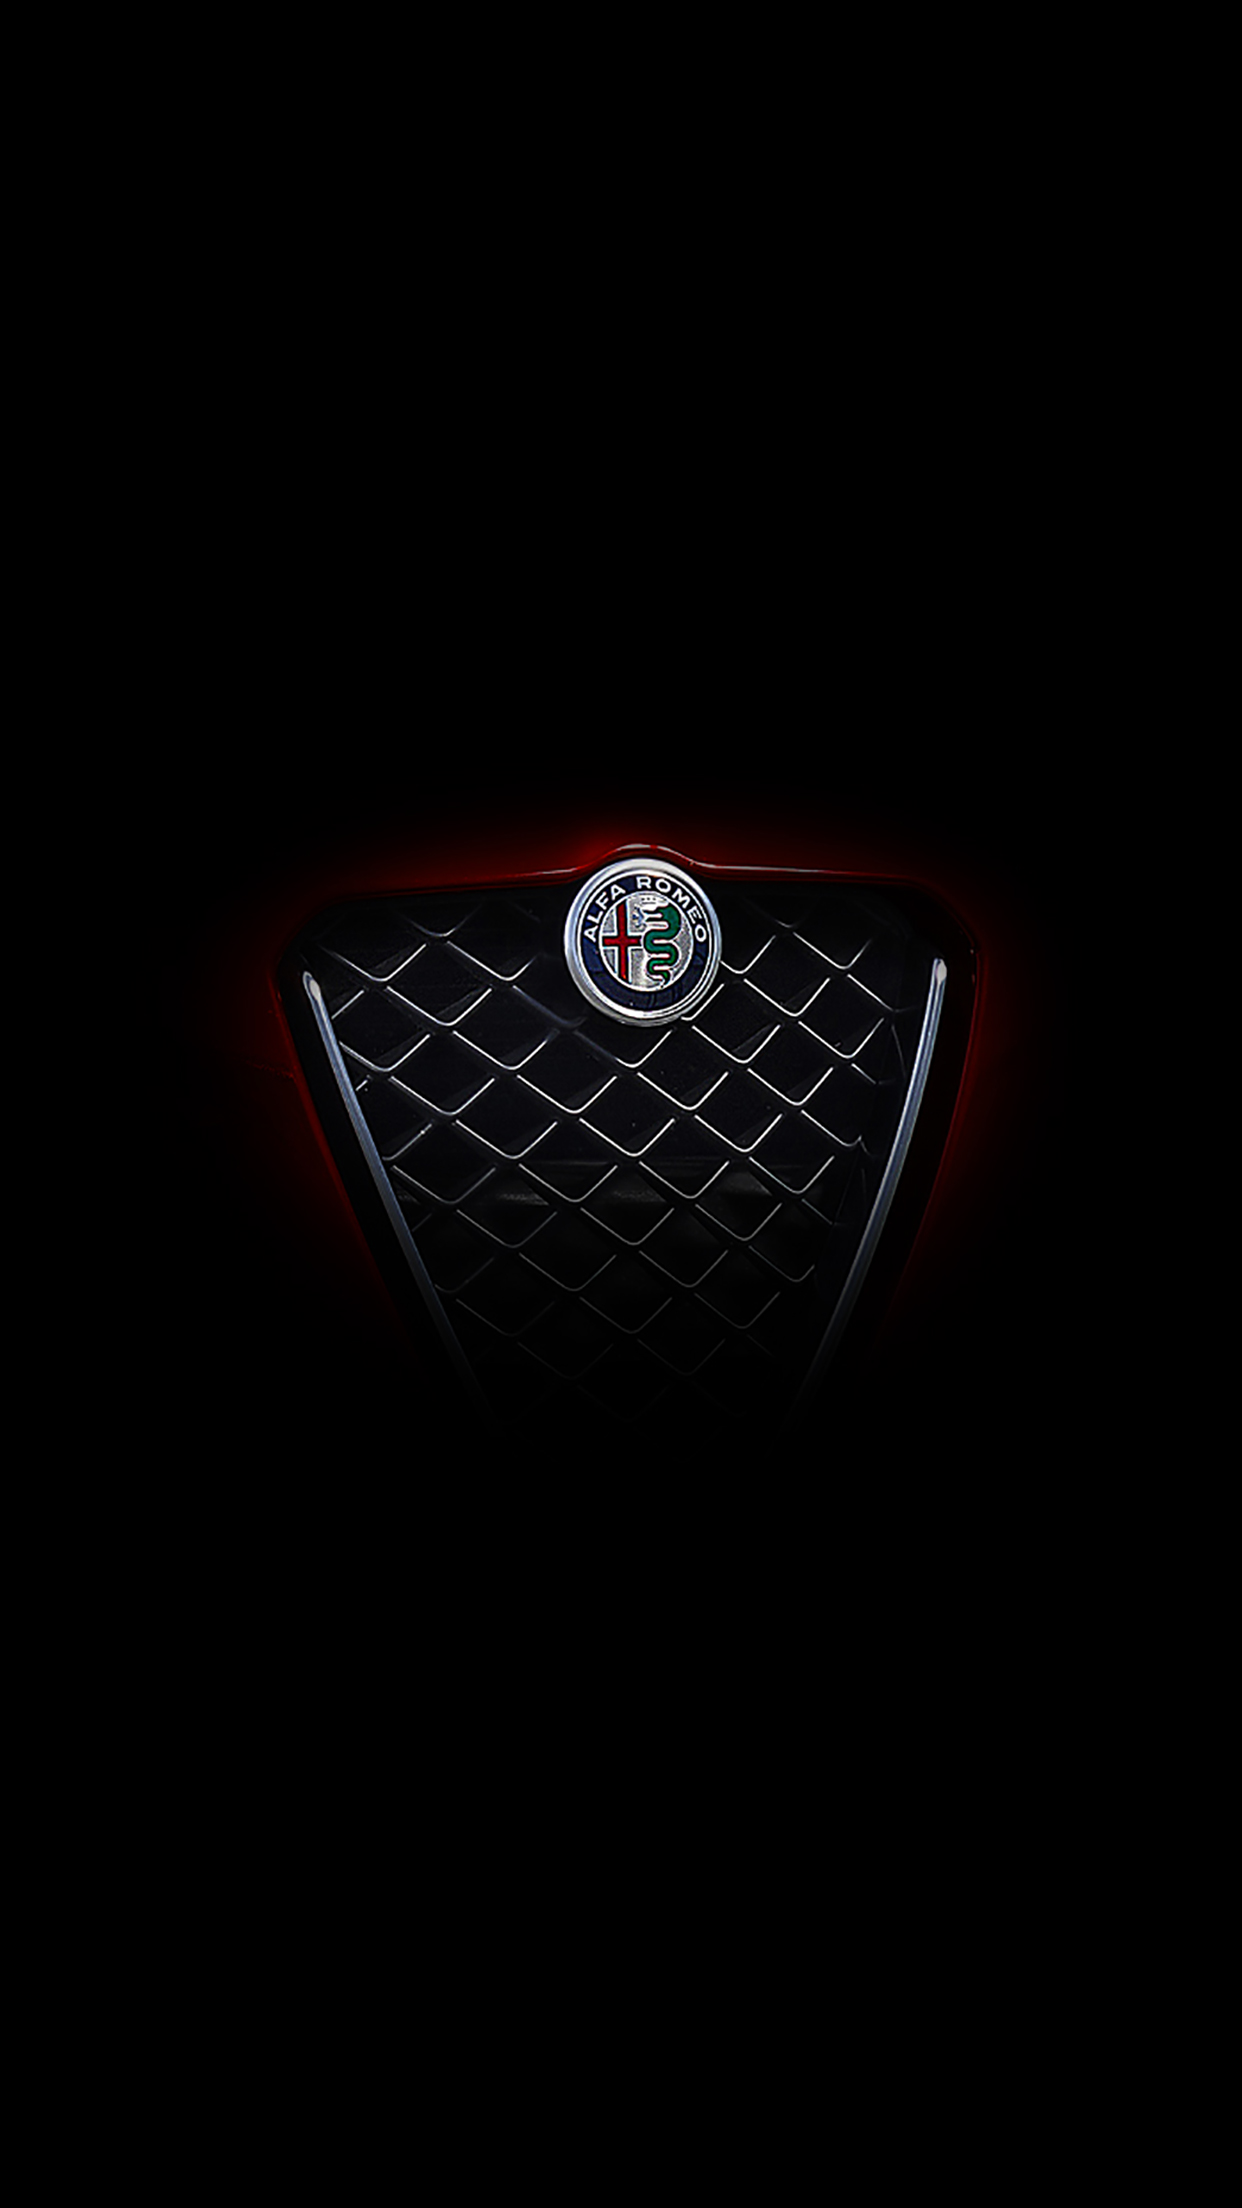 Alfa romeo logo black and white 8